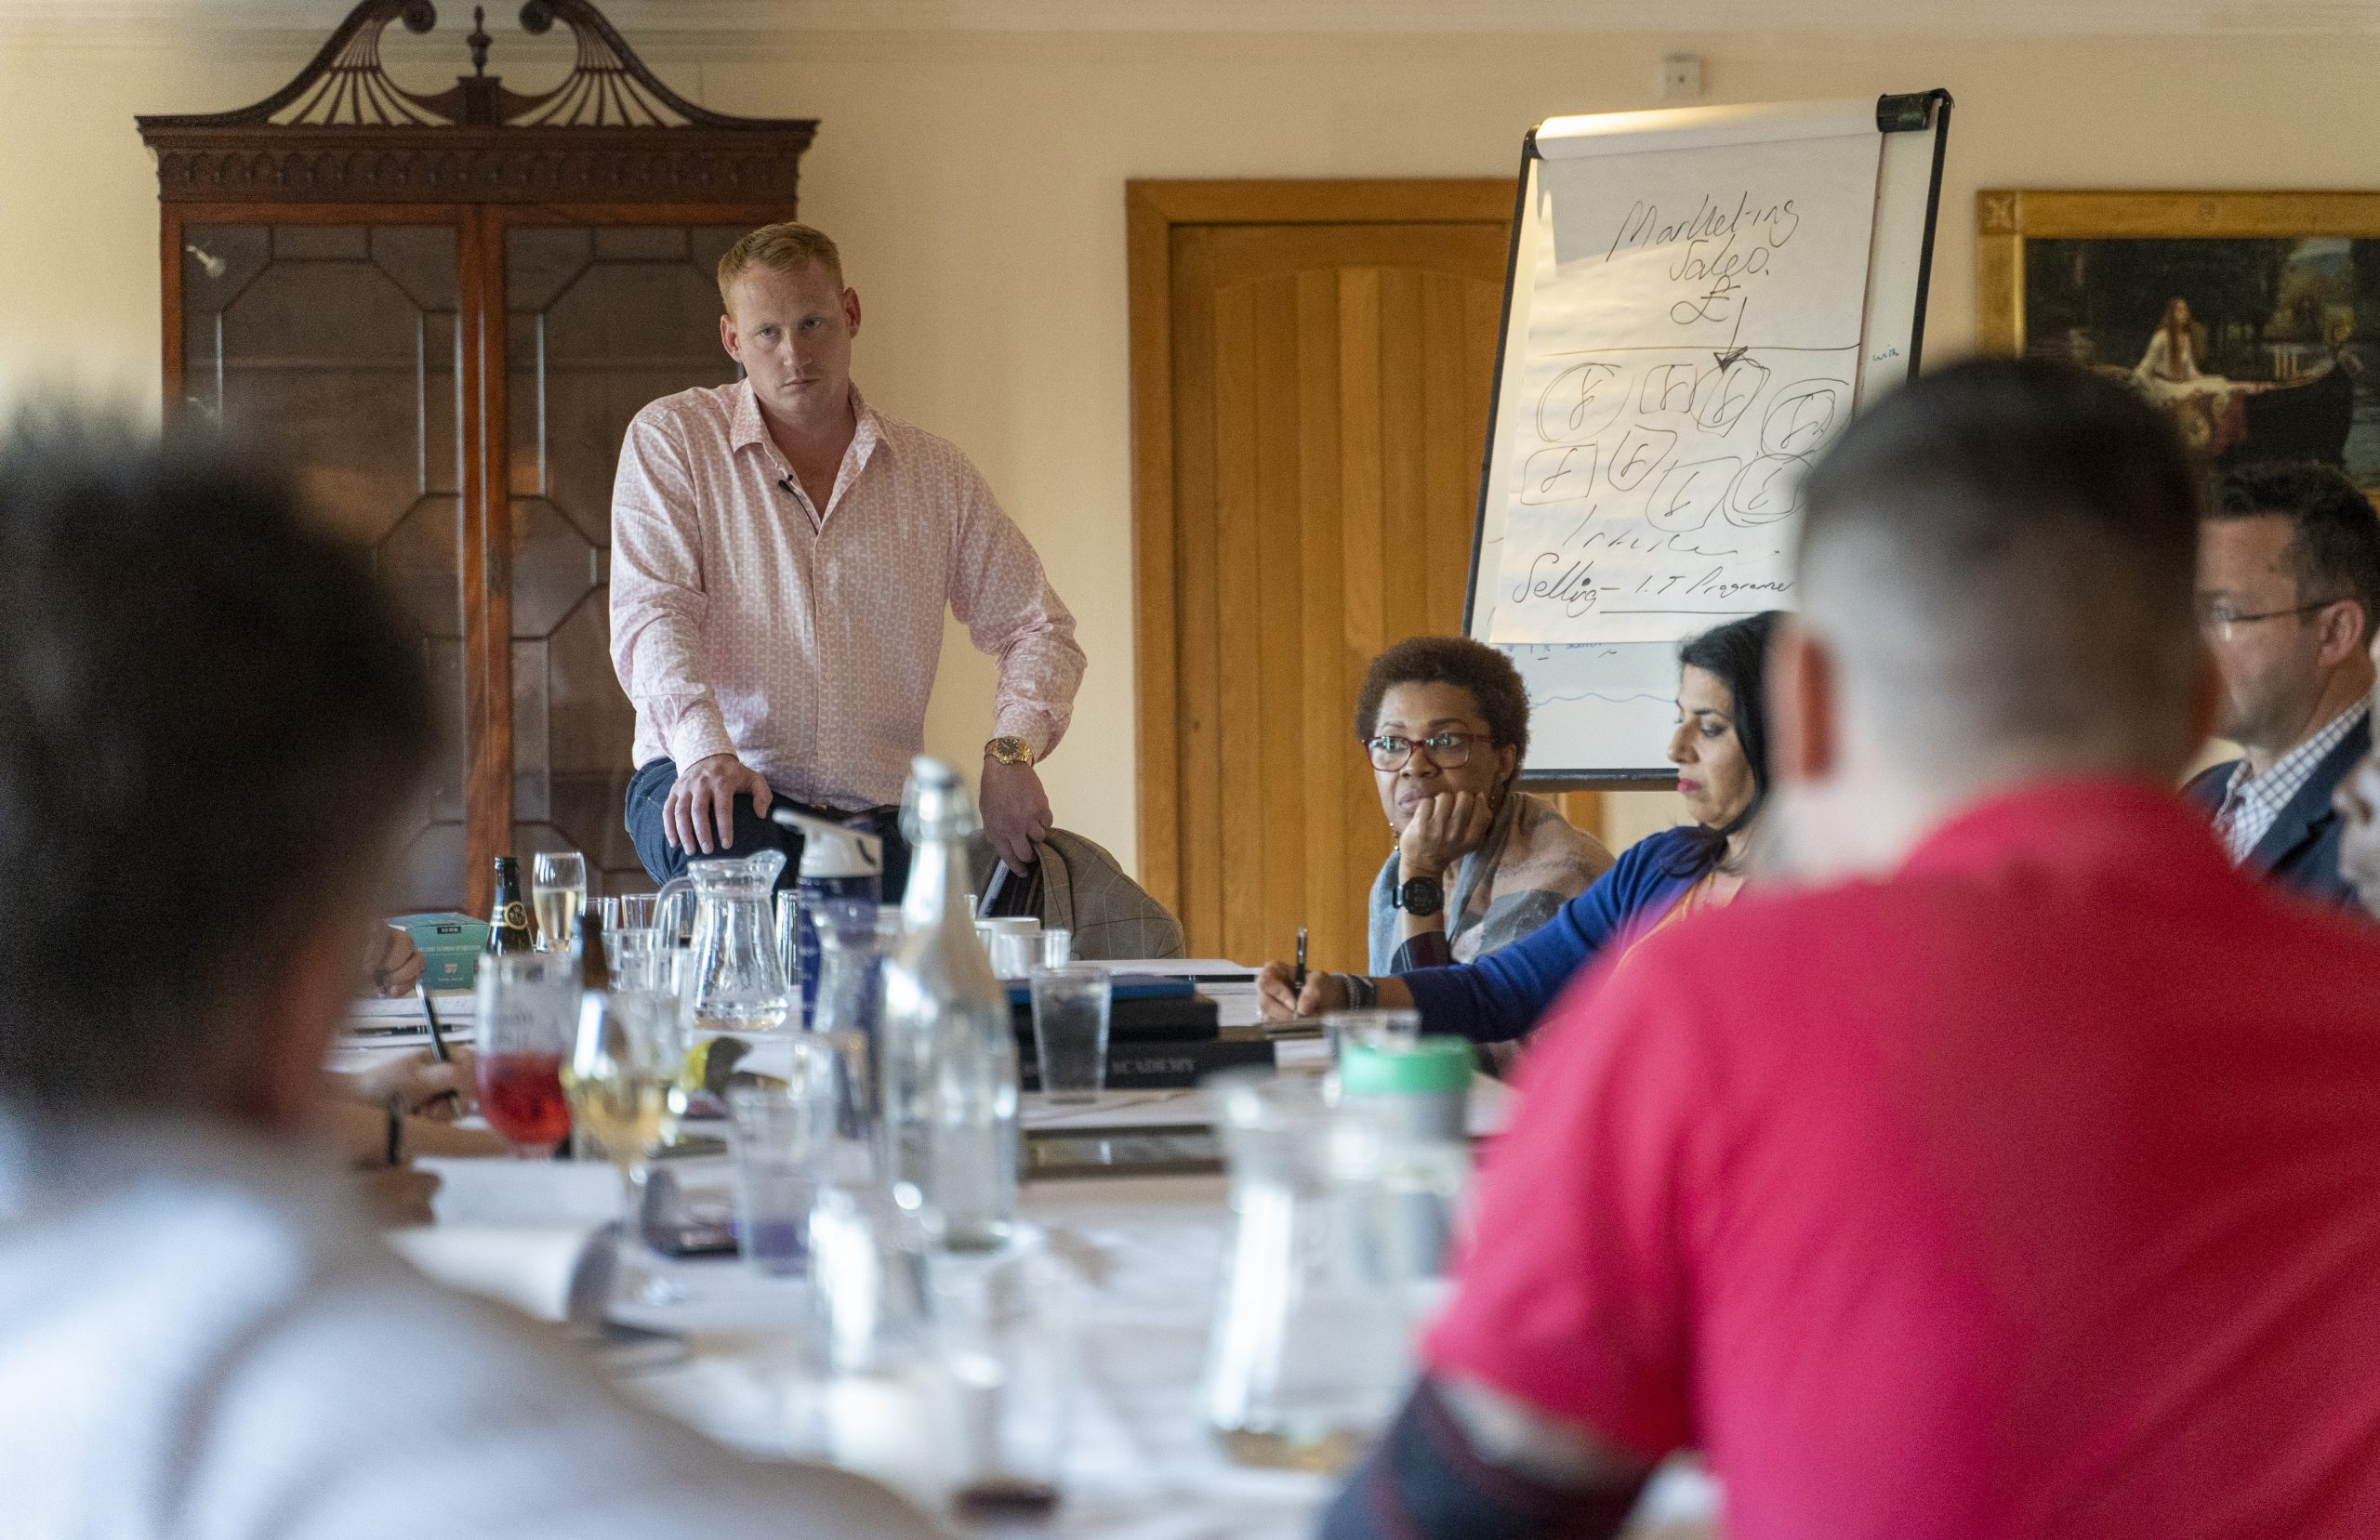 Discover 3 Key Benefits of Group Coaching Sessions with Adam Stott